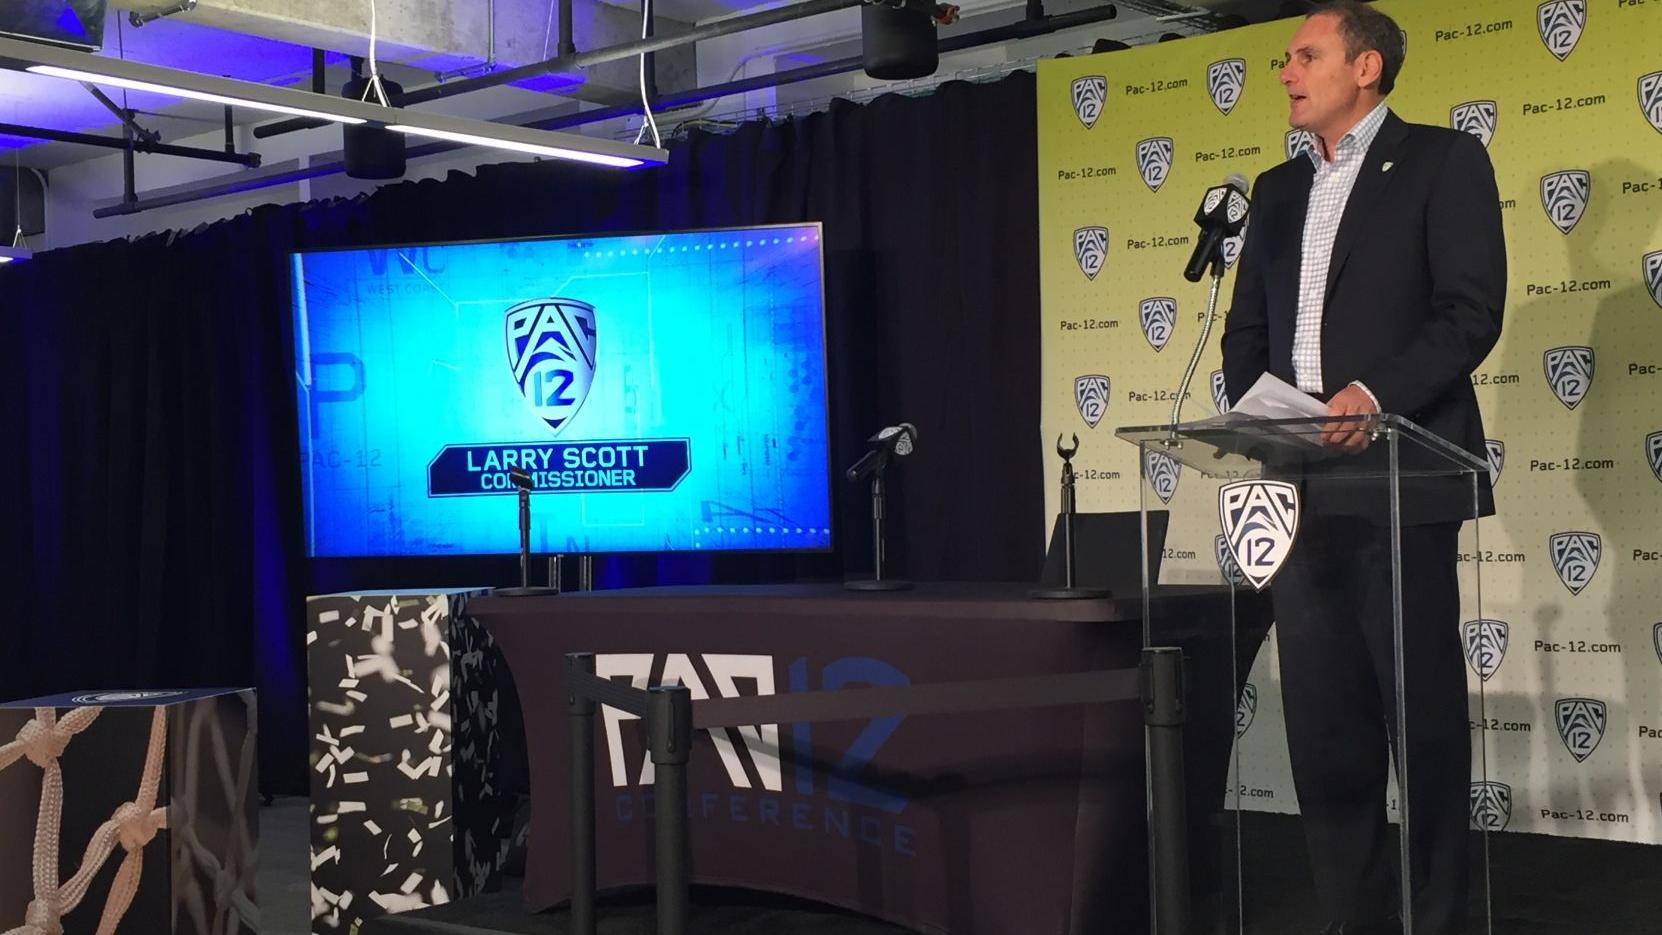 Pac-12 announces task force to examine college basketball issues